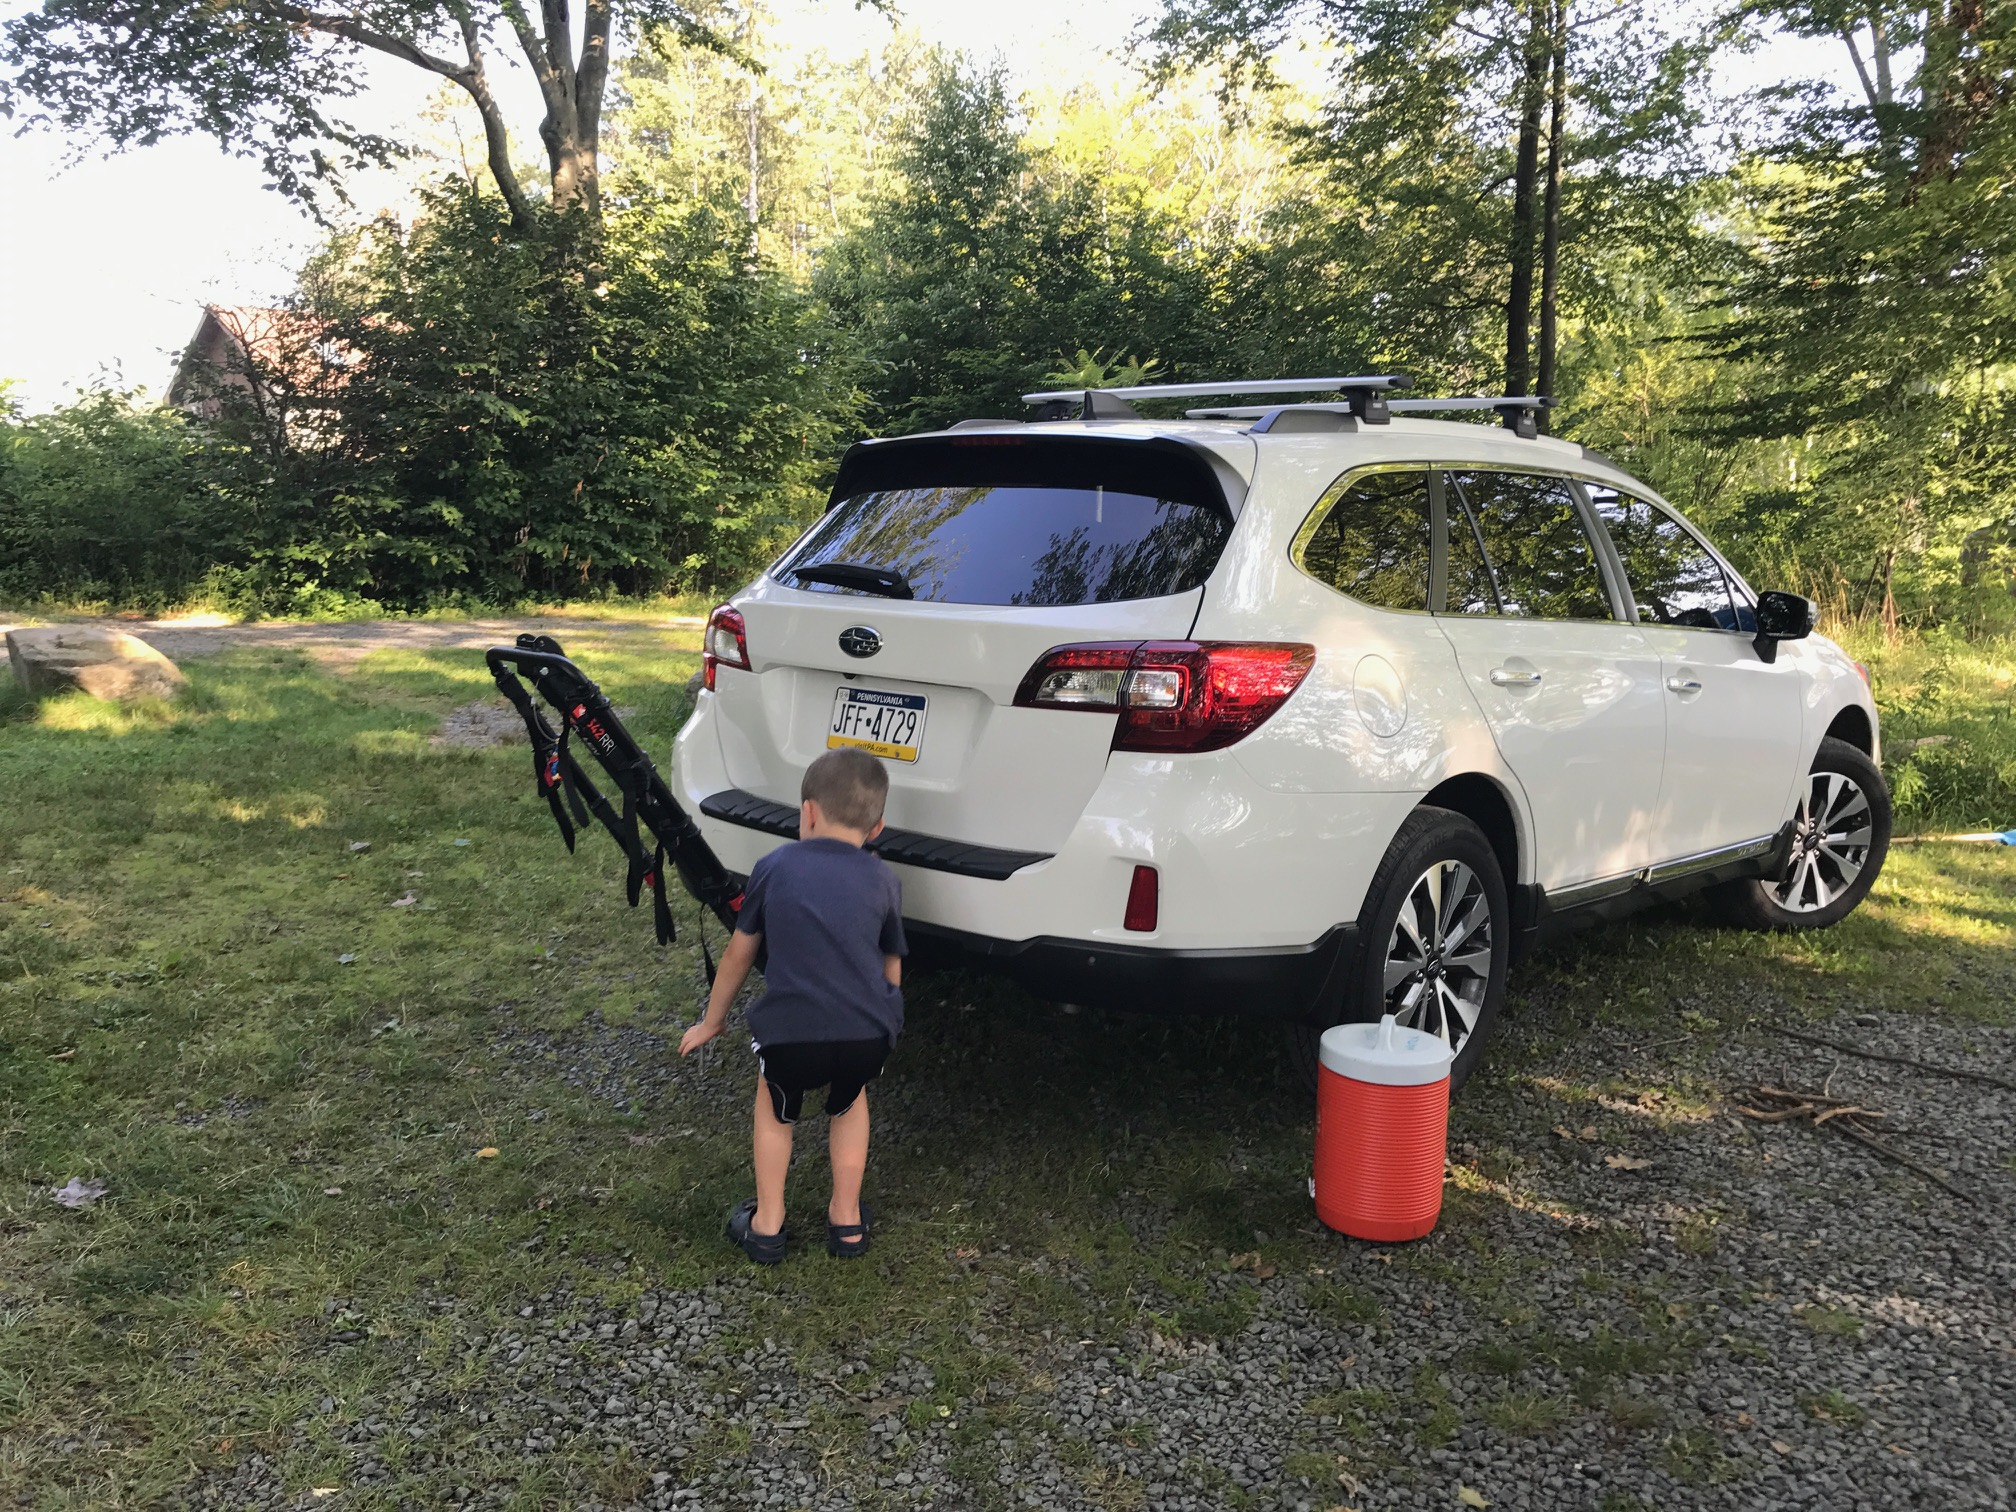 fs 2017 outback touring white on java brown subaru outback subaru outback forums. Black Bedroom Furniture Sets. Home Design Ideas